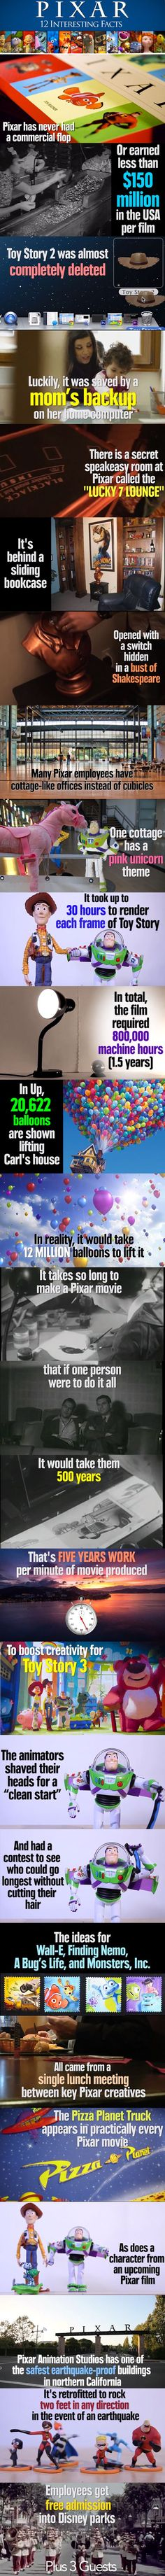 This is why I want to work for Pixar in the future...